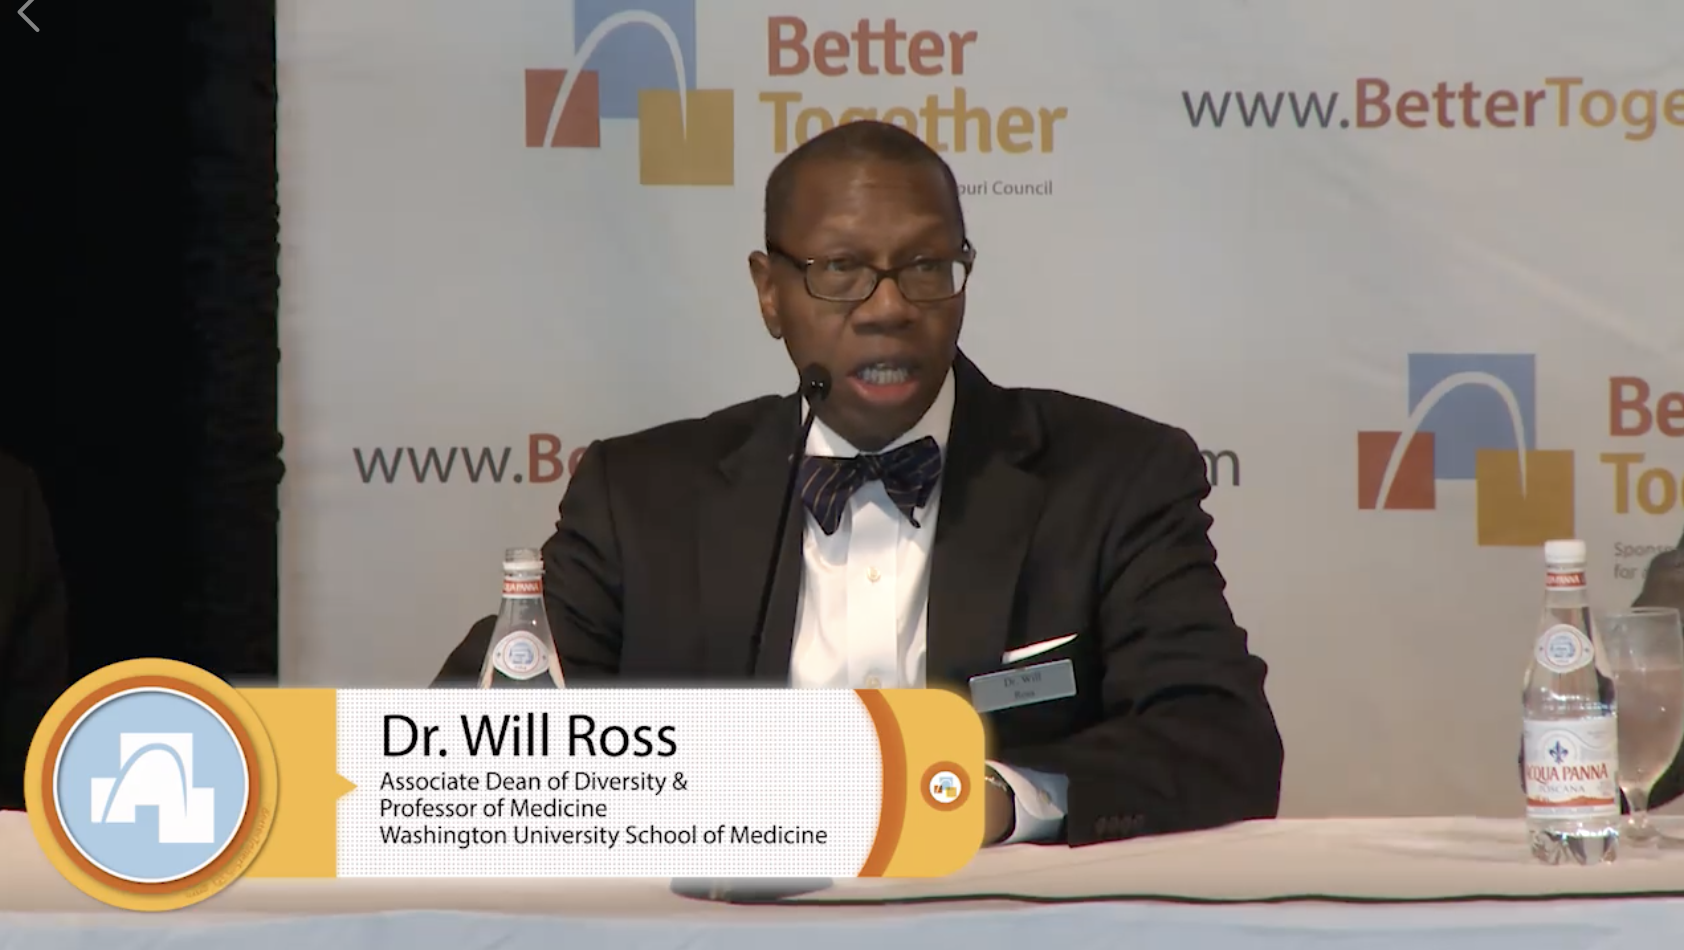 Dr. Will Ross